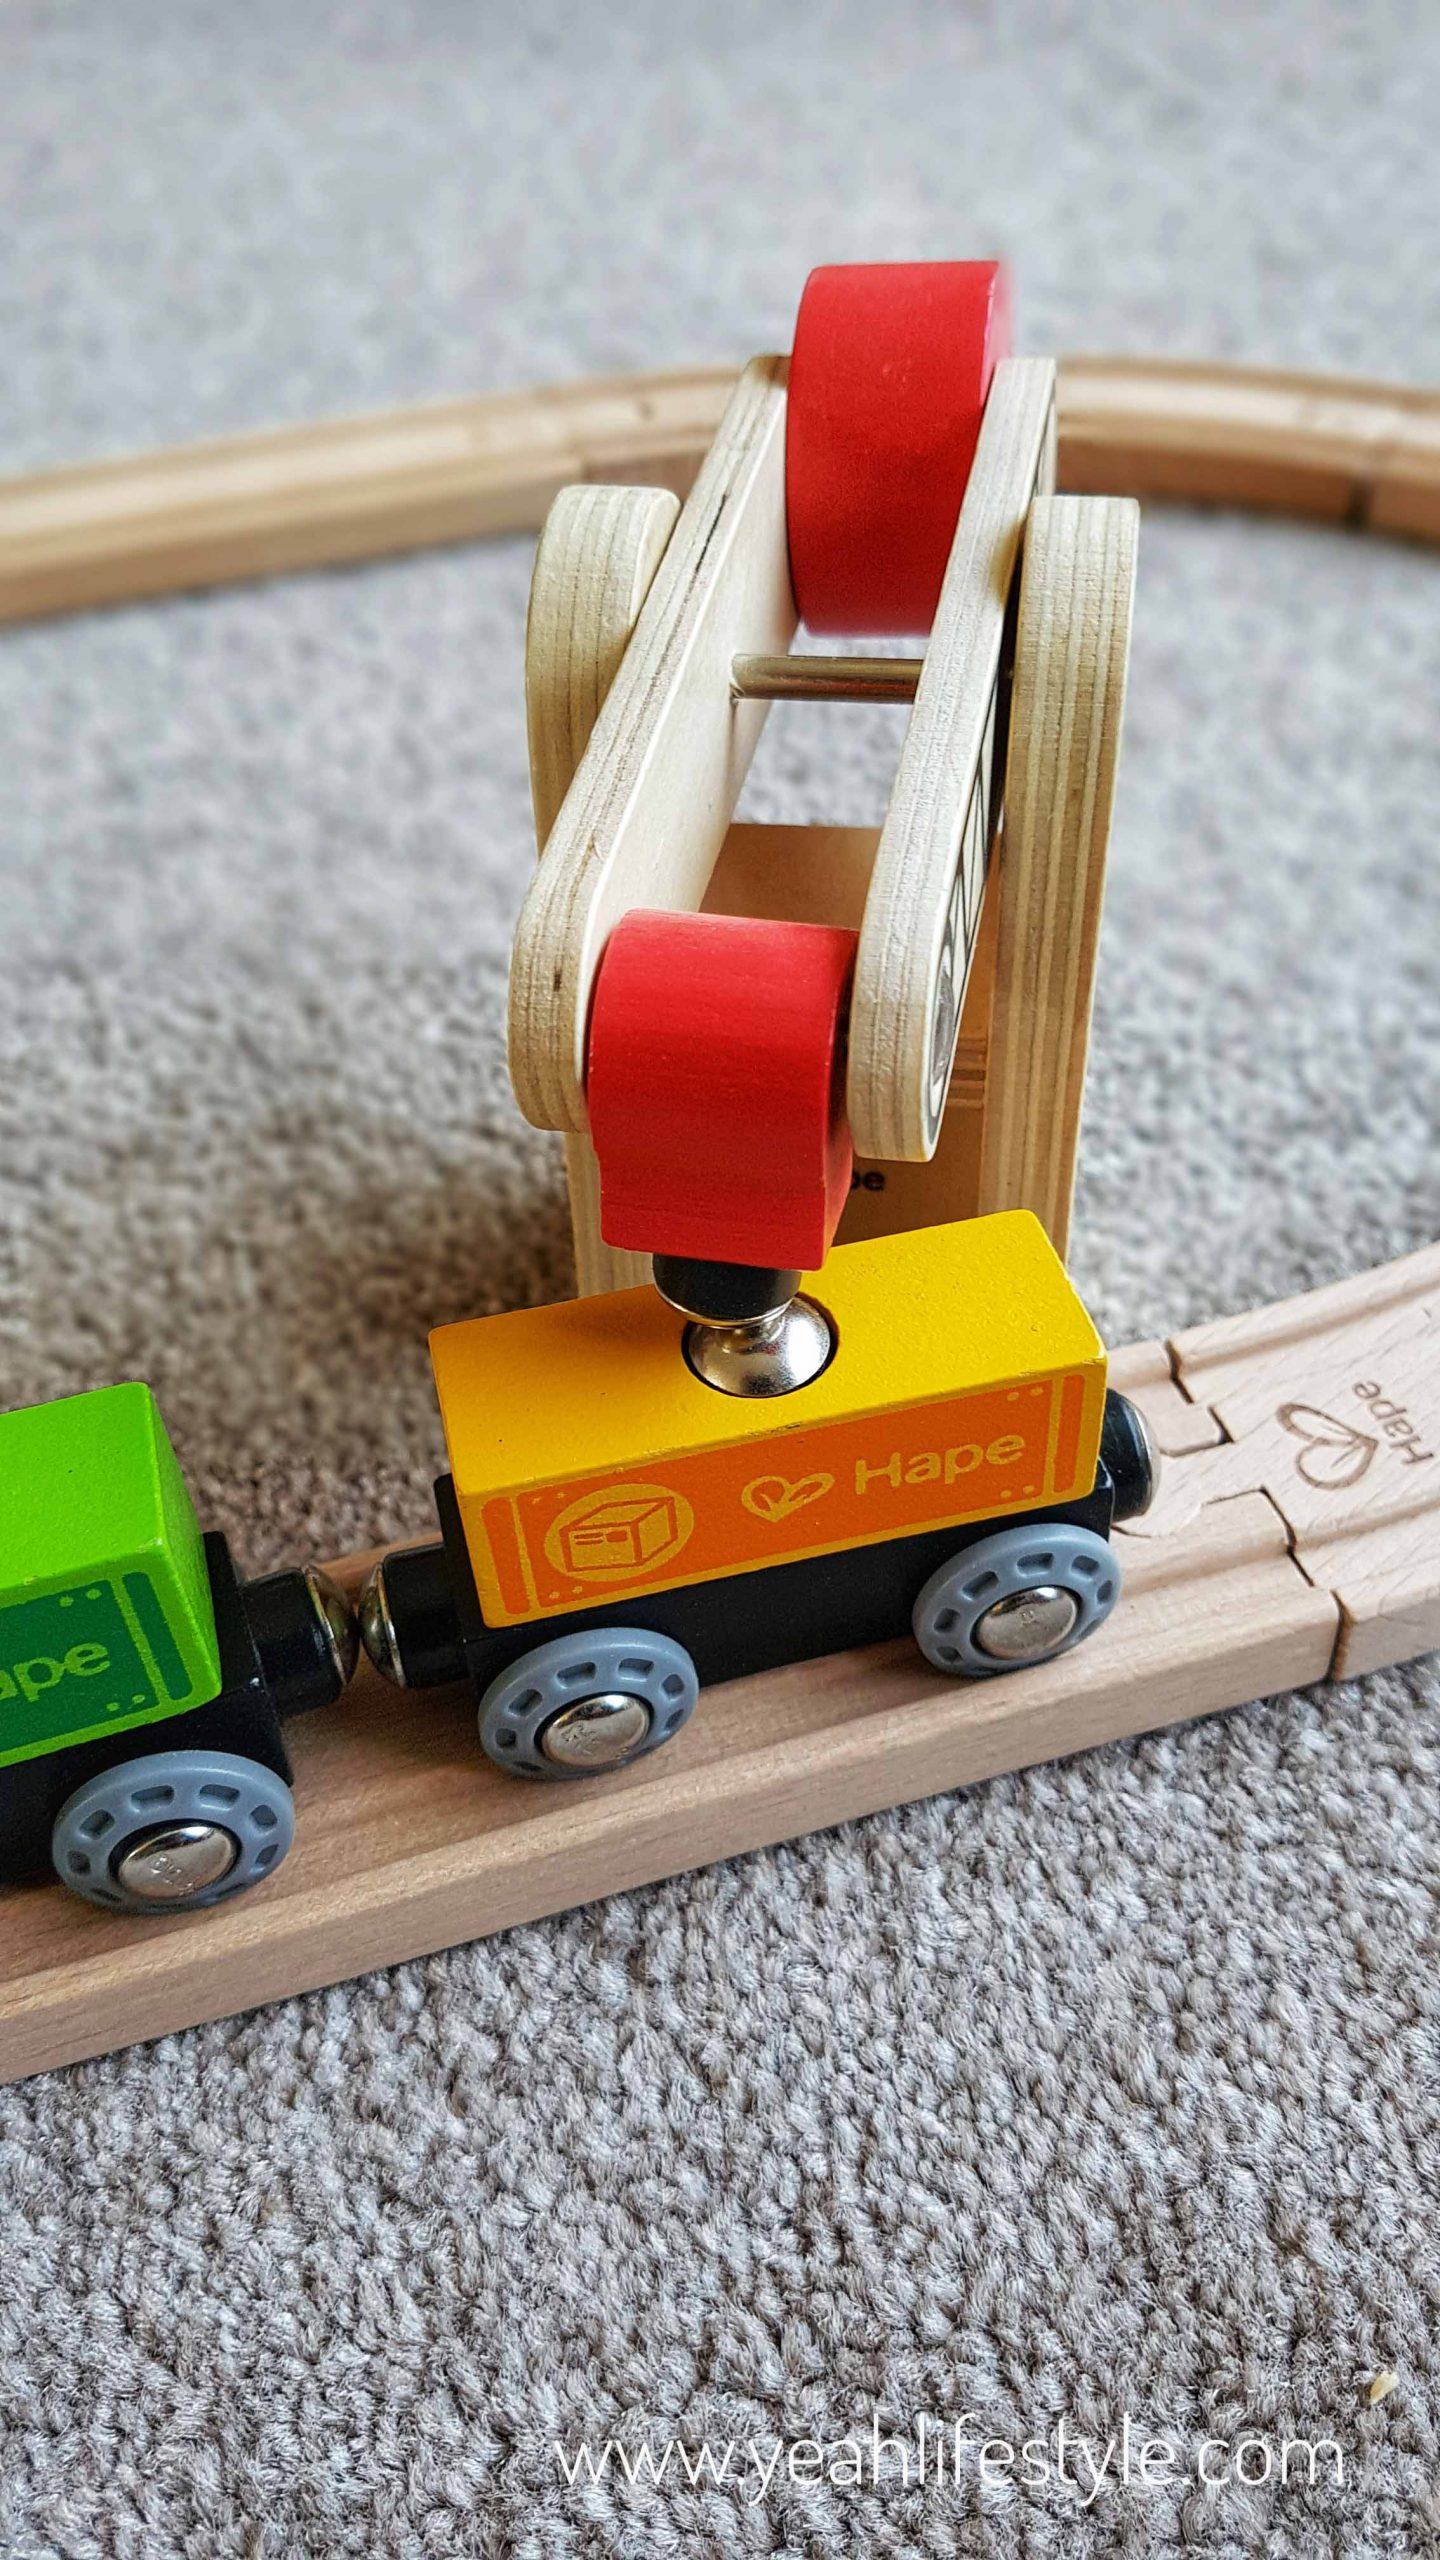 Hape-kids-wooden-train-set-blogger-review-toys-toddler-play-carriages